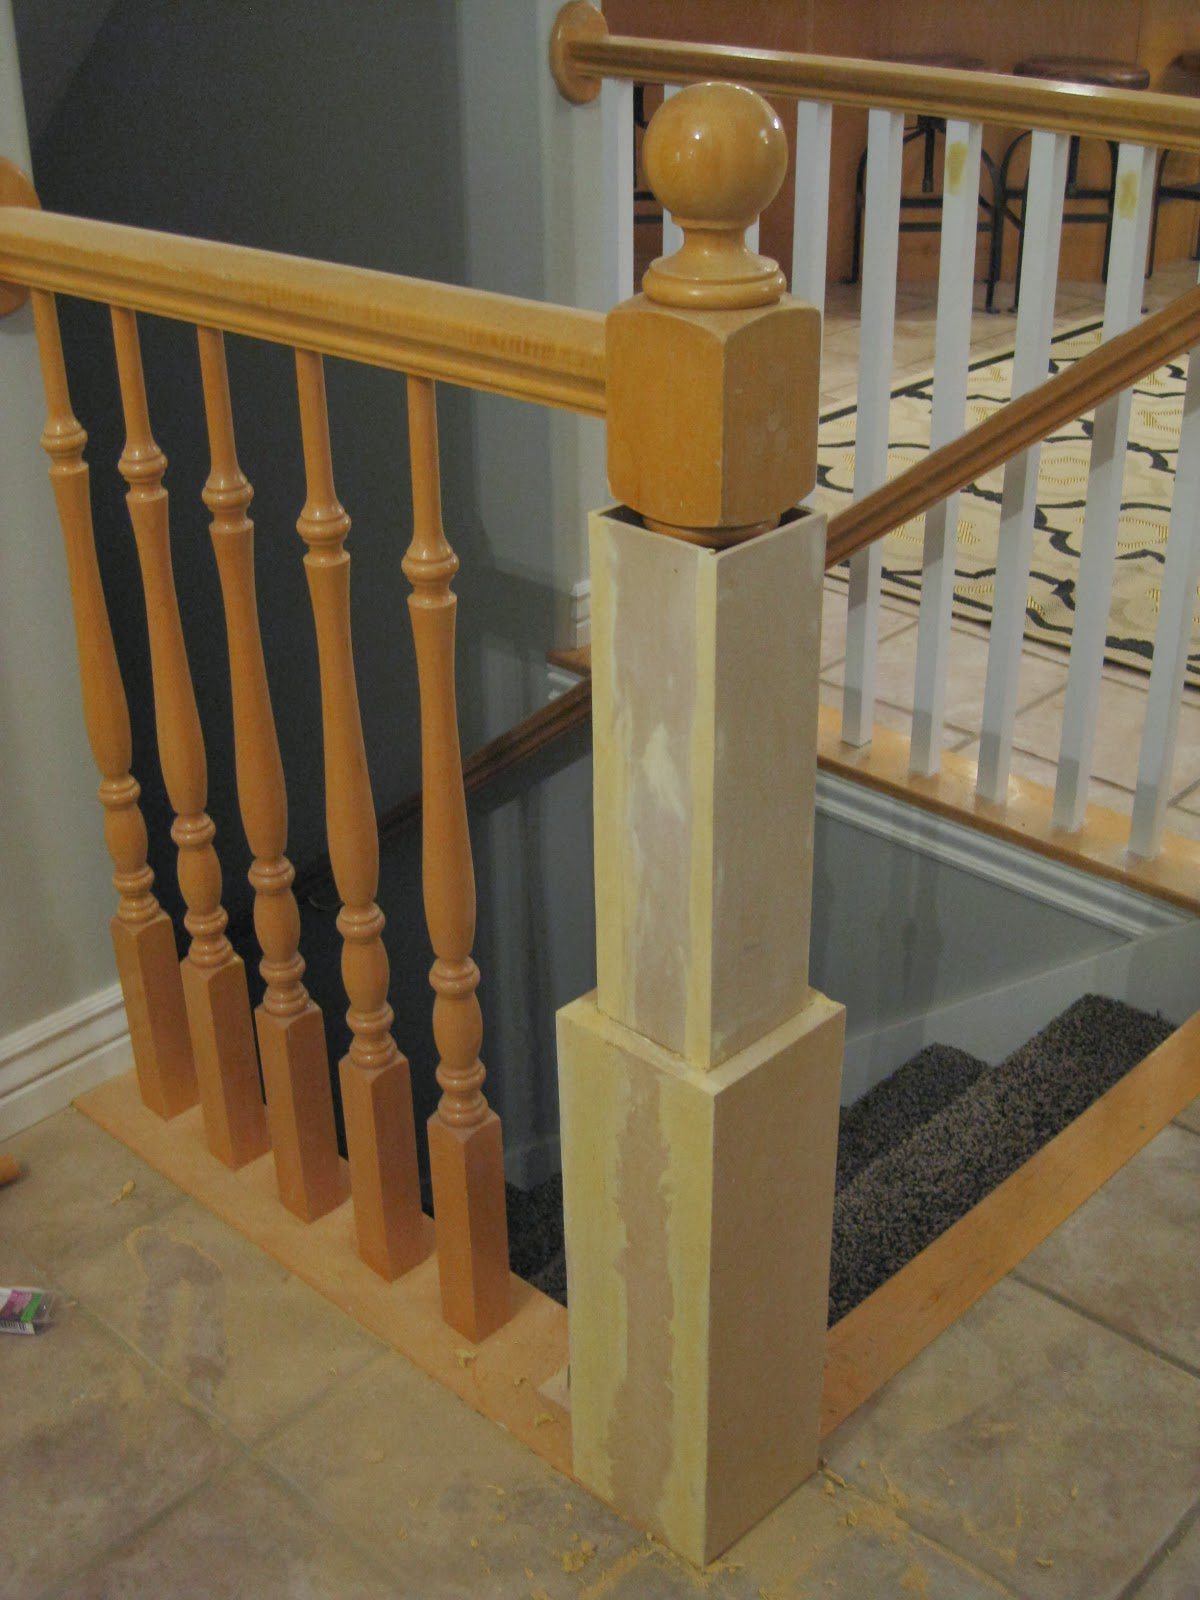 Diy Newel Post With Existing Banister Tda Decorating And Design Featured On Remodelaholic